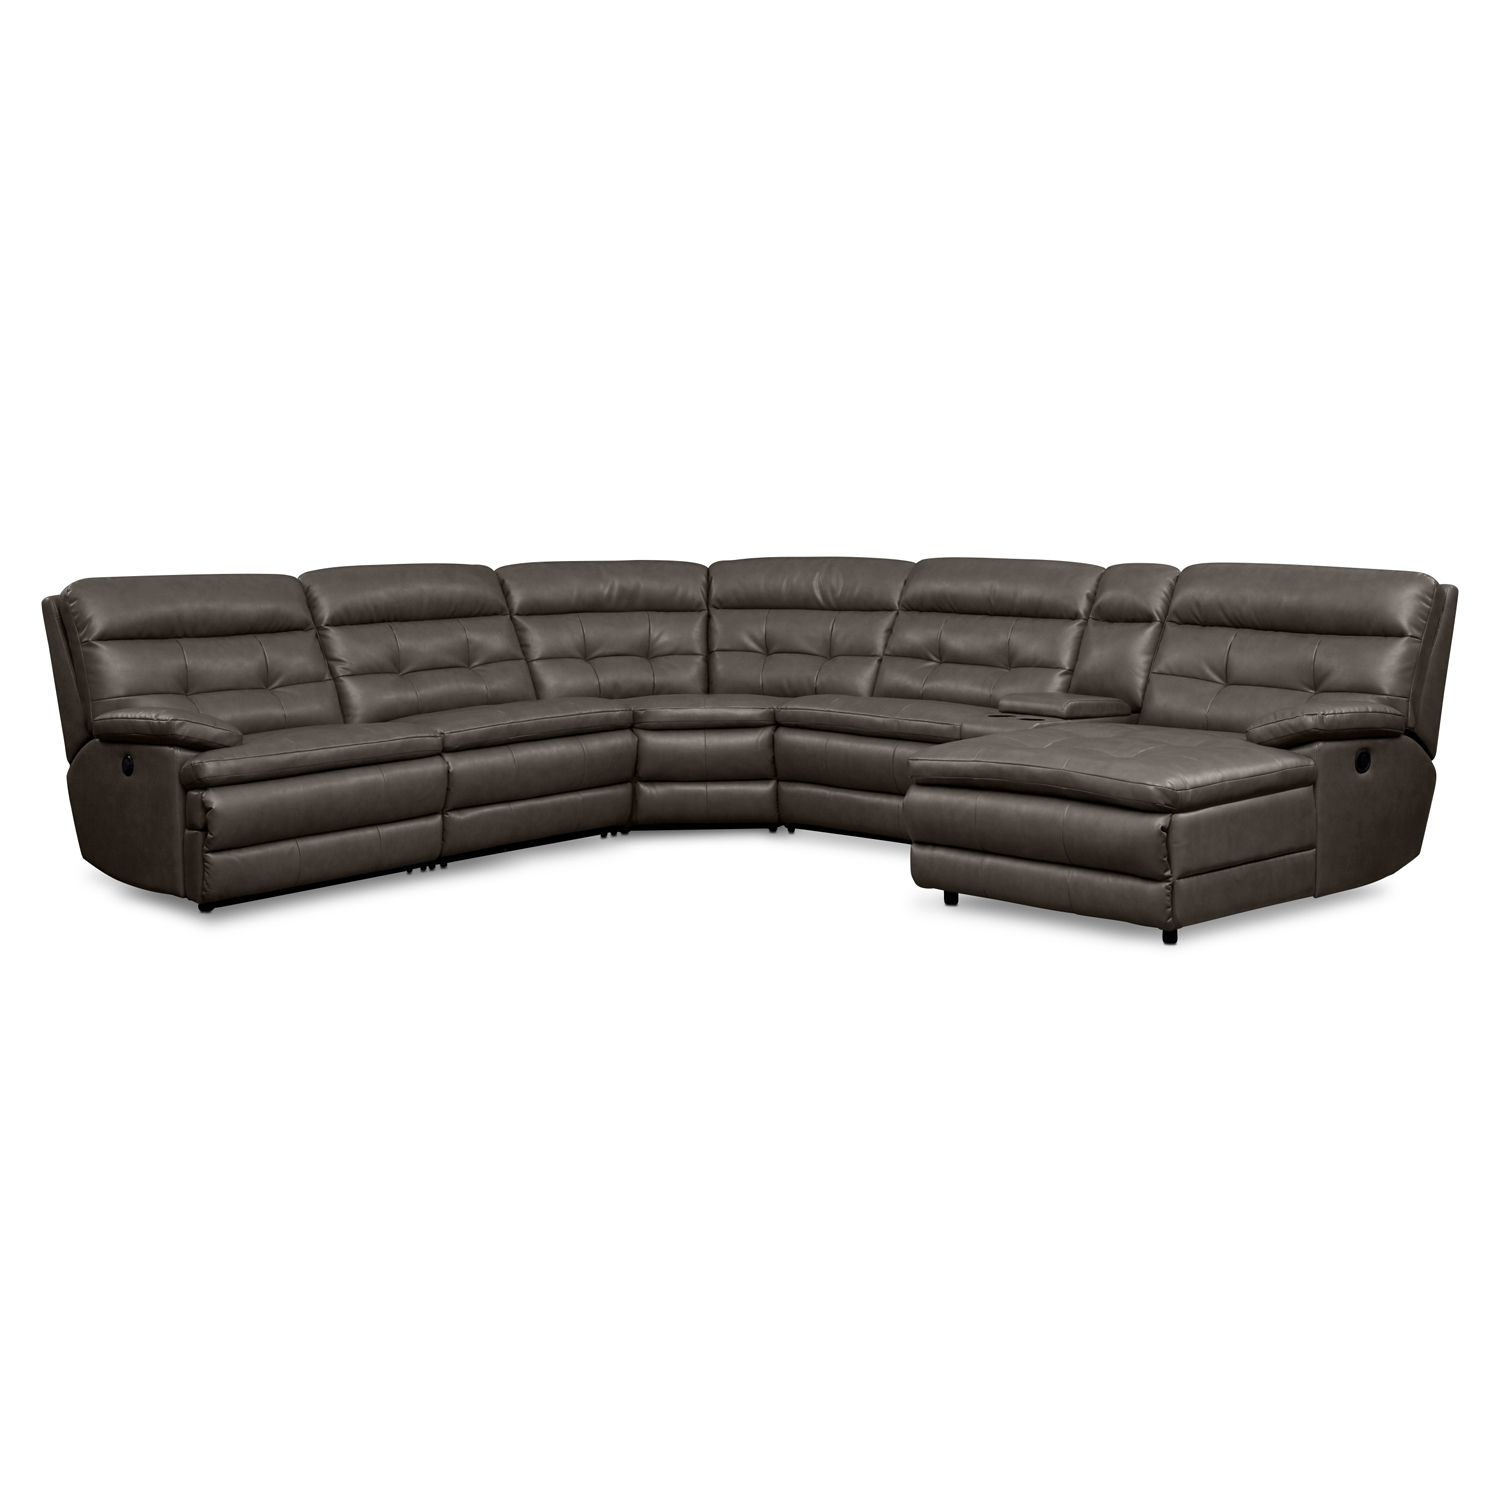 Brilliant Commander Leather 6 Pc Power Reclining Sectional Value Dailytribune Chair Design For Home Dailytribuneorg